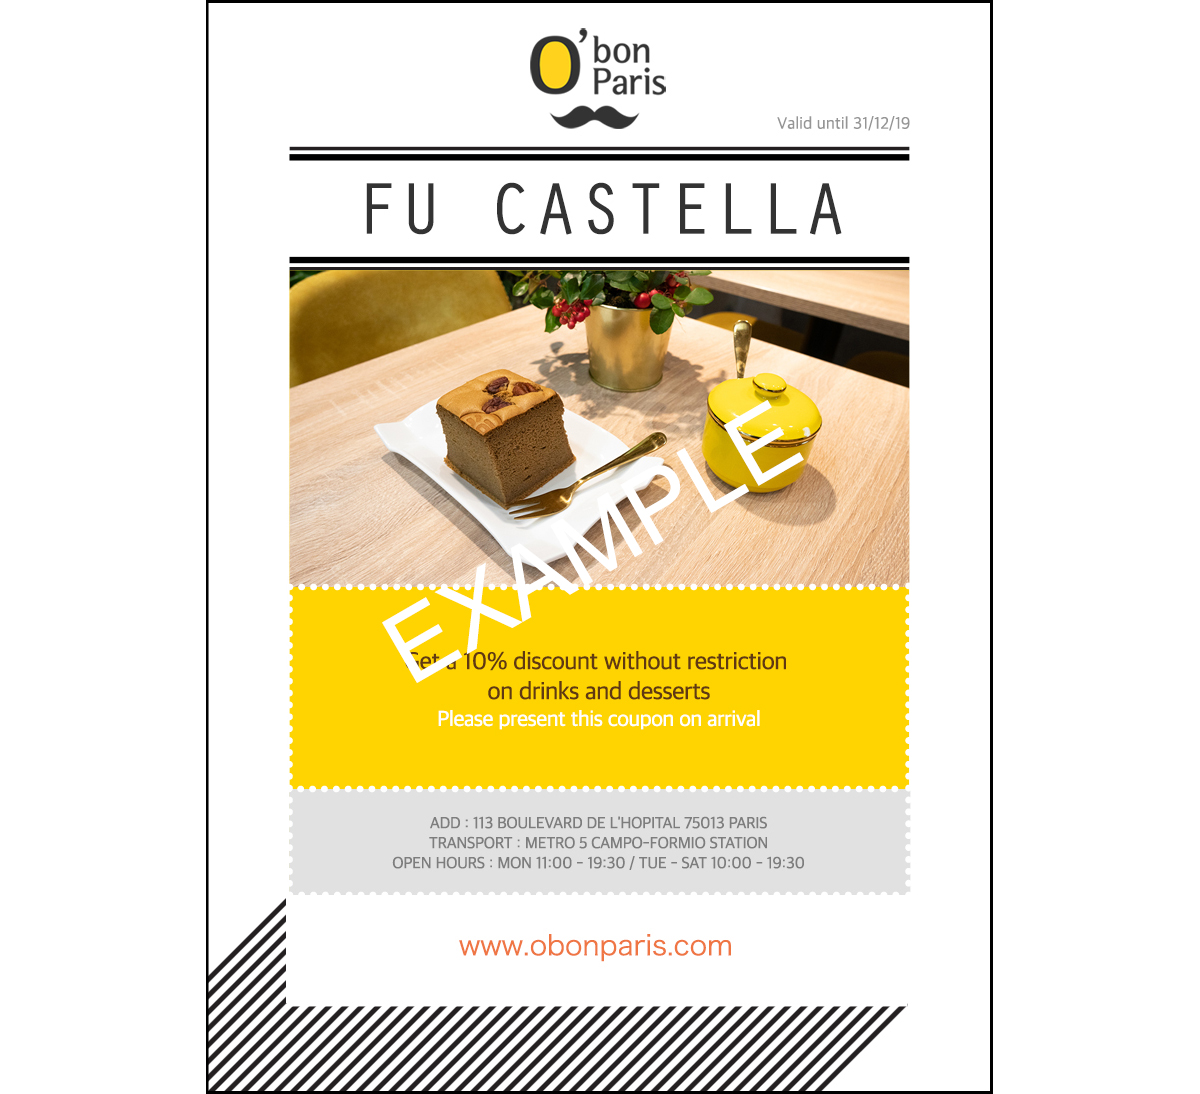 coupon castella